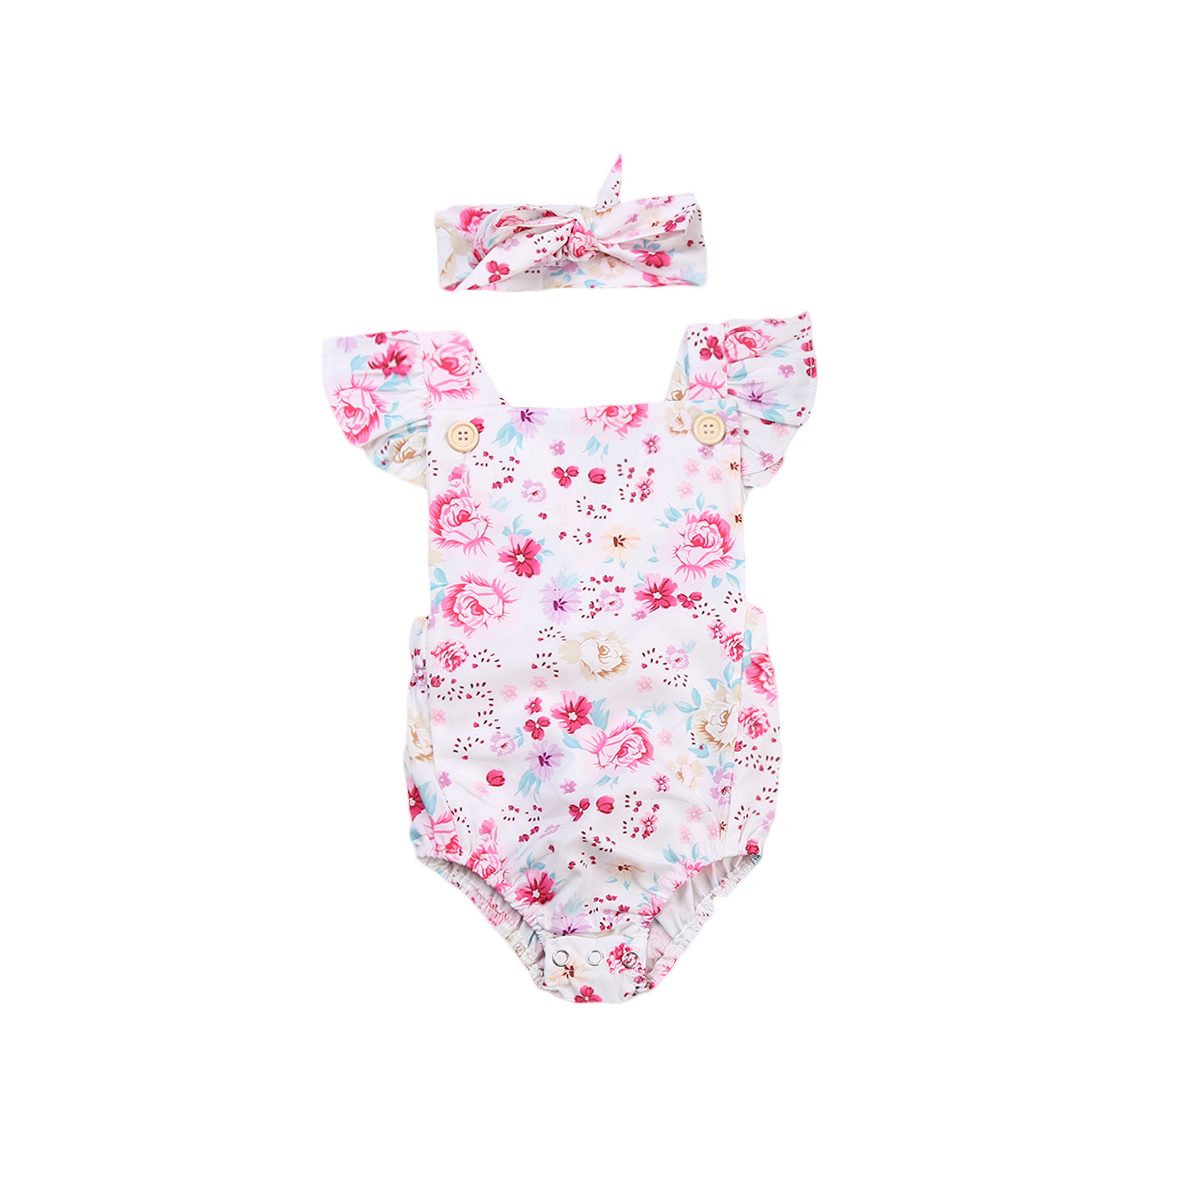 Cute Infant Baby Girls Clothes Foral Romper Jumpersuit+Headband 2Pcs sets Toddler Girls Summer Cotton Outfit